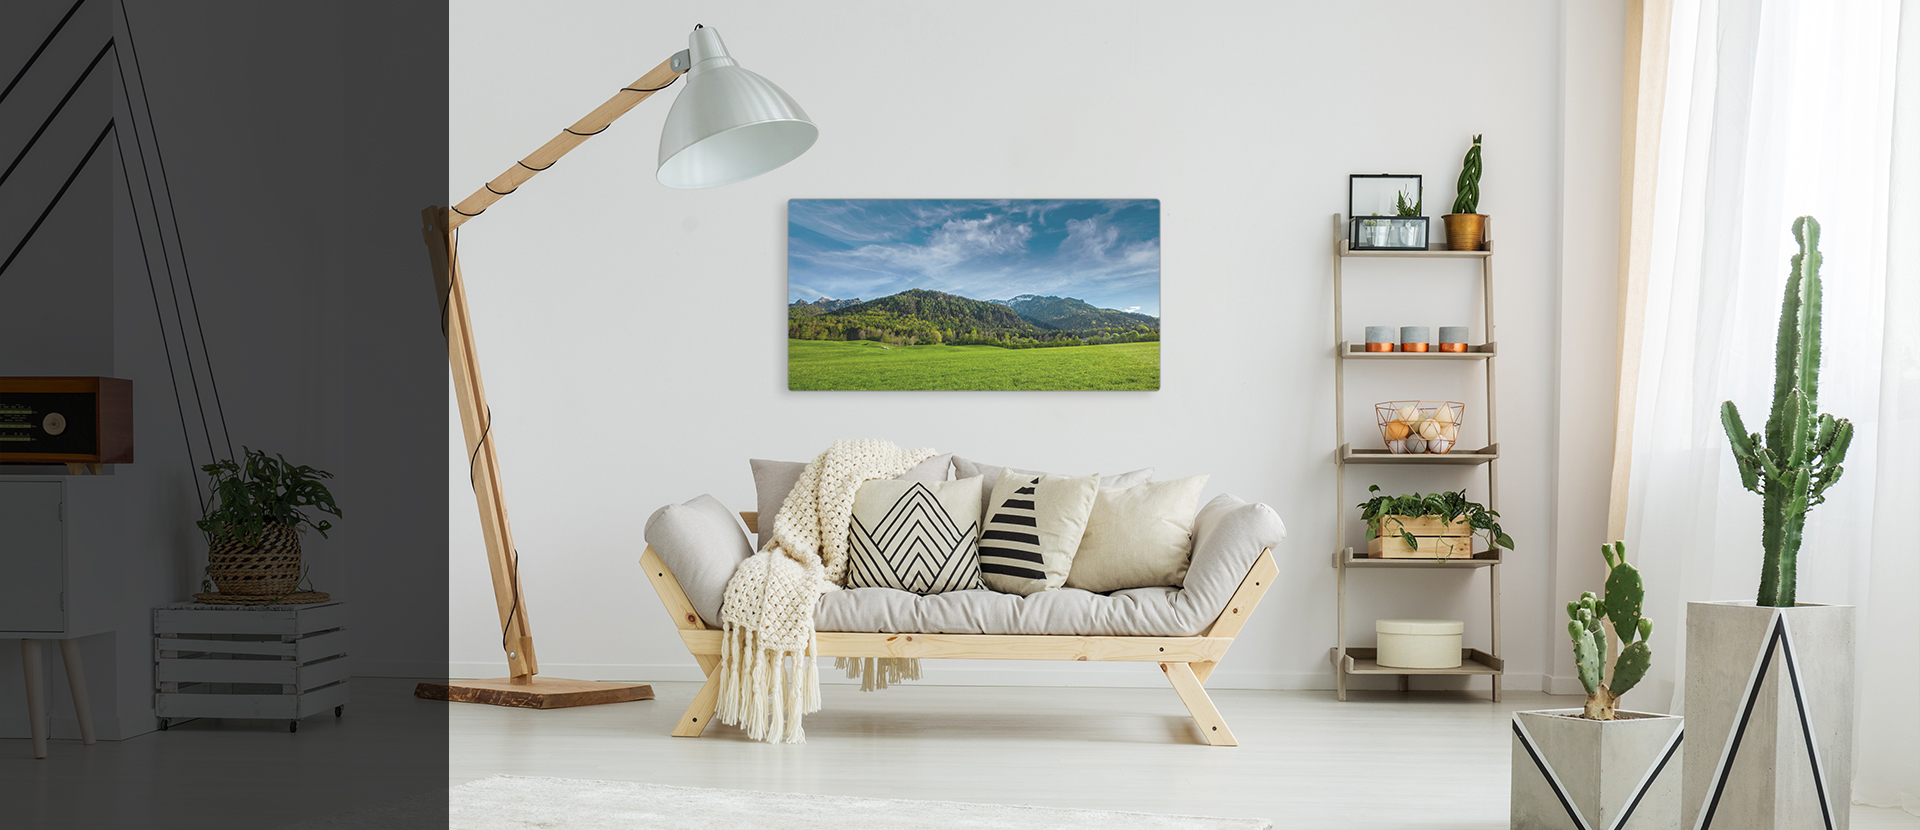 Infrared-glass-panel-with-print-Sundirect